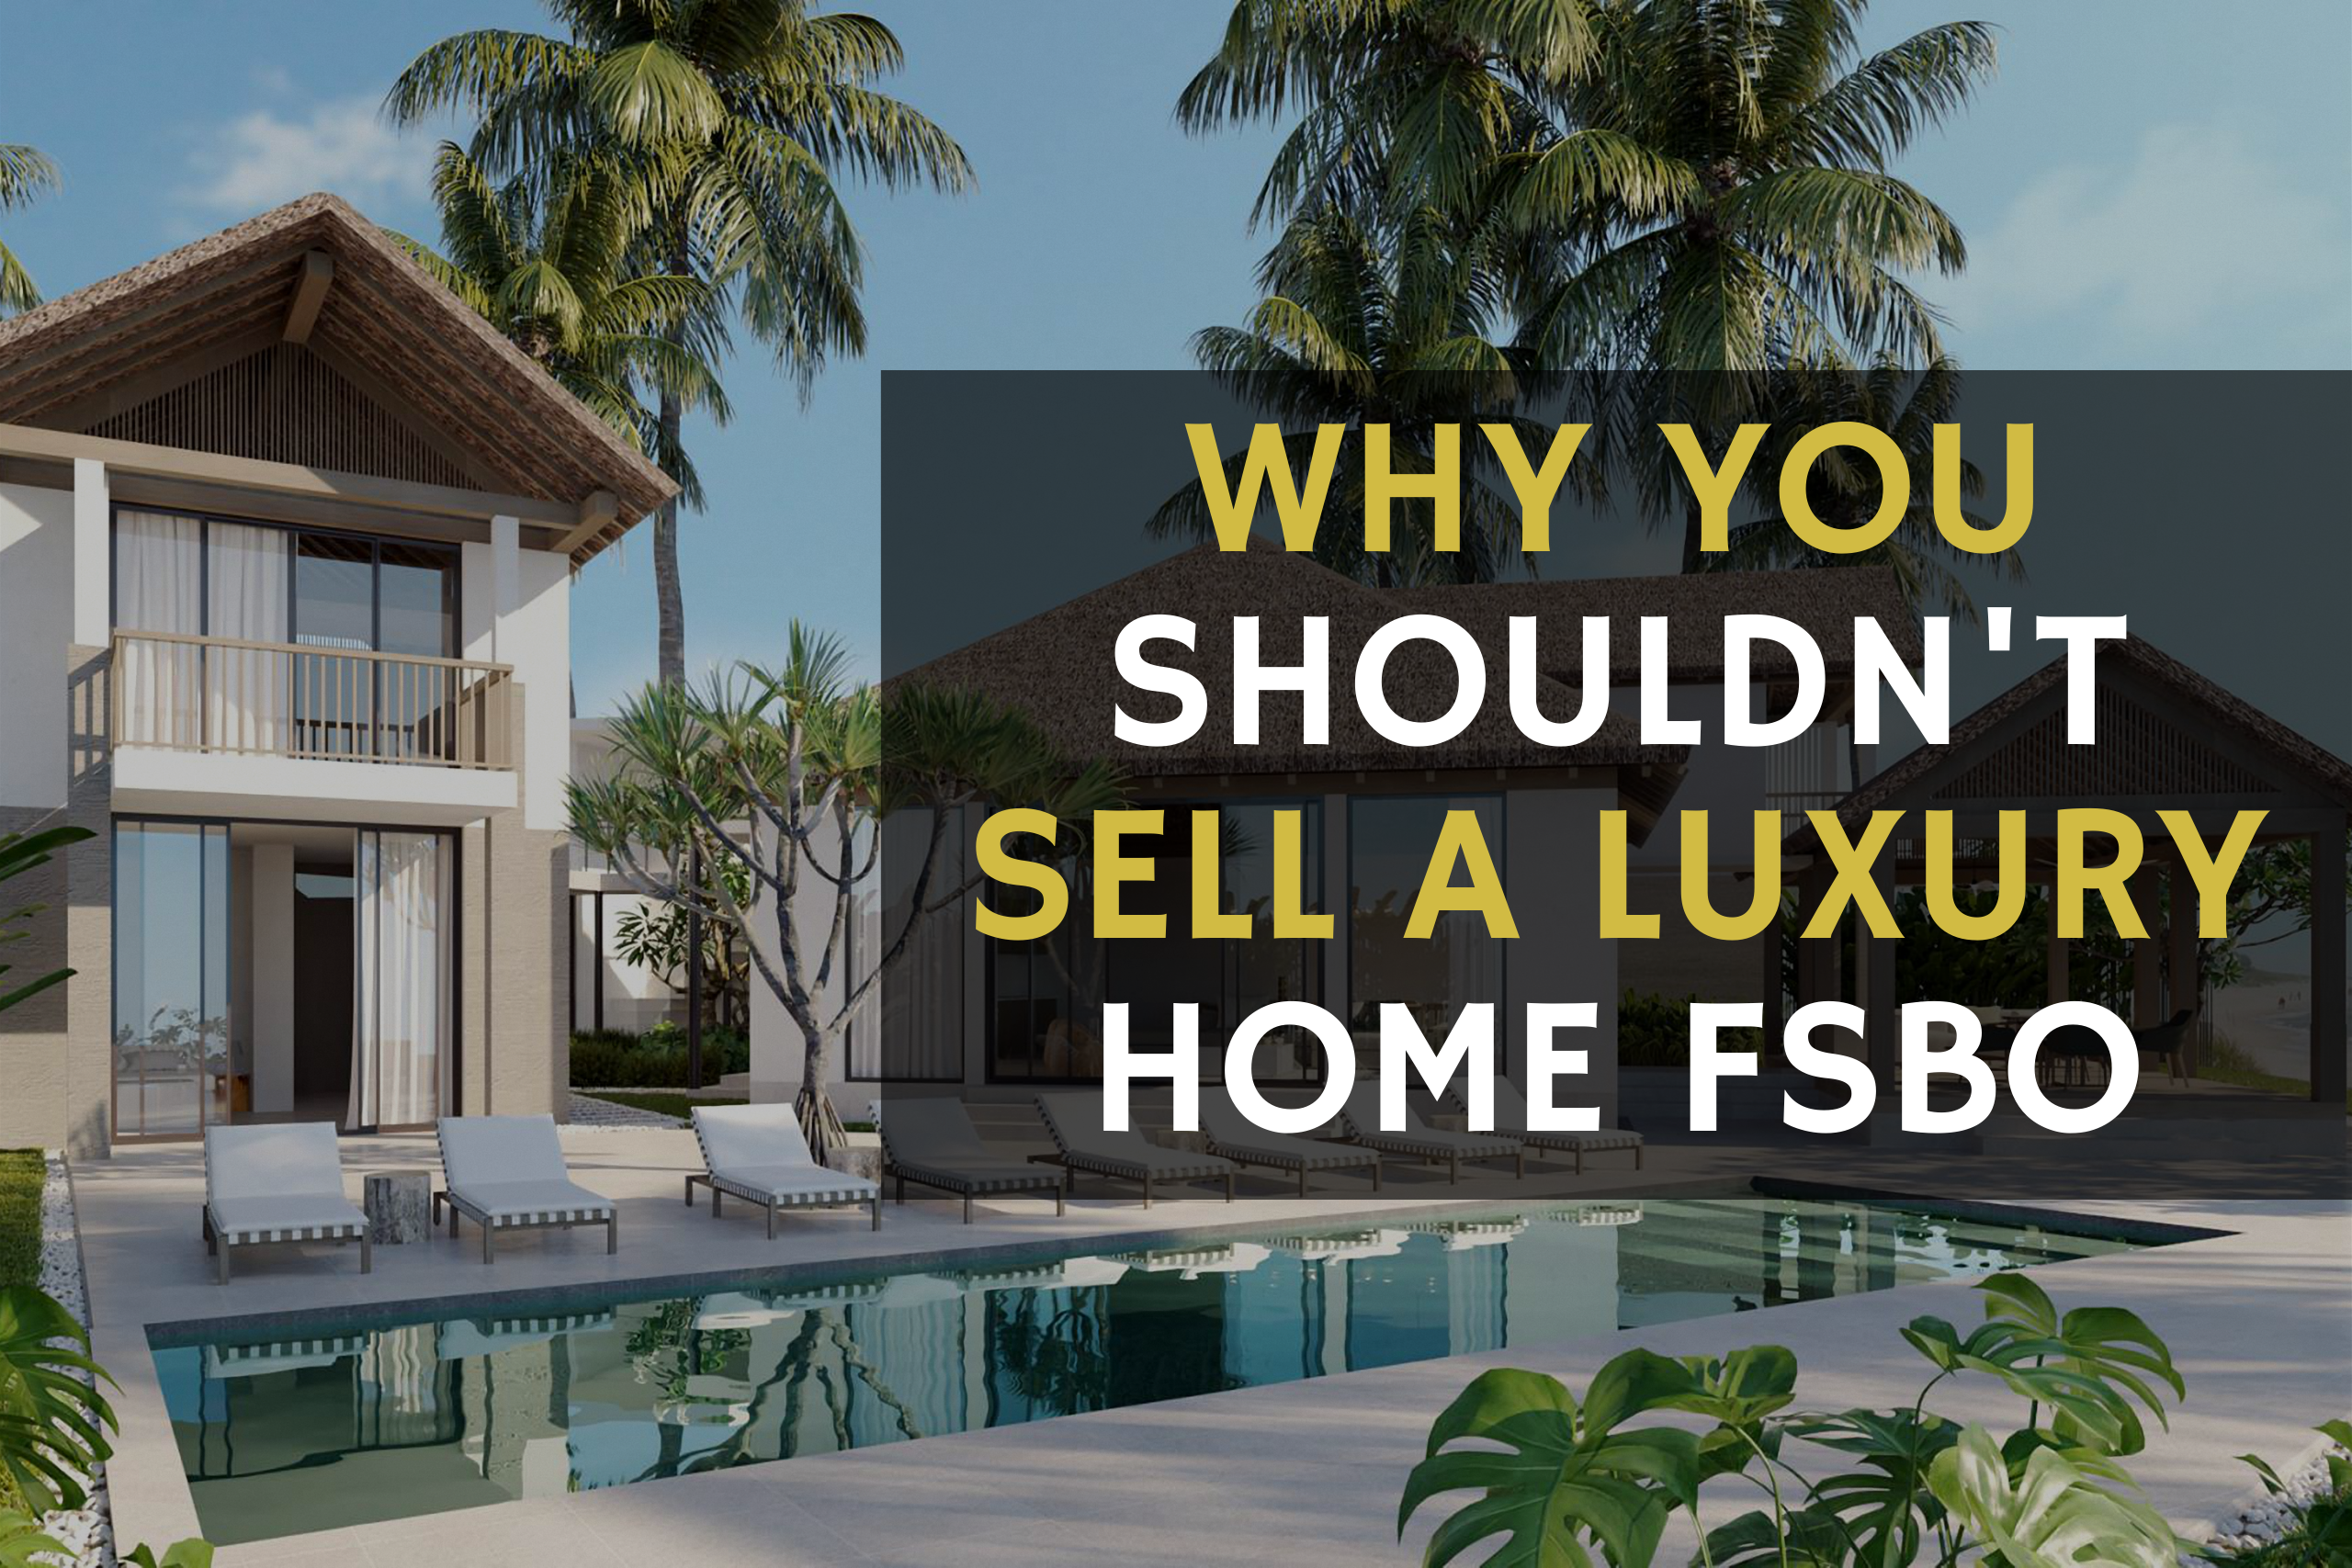 luxury home fsbo